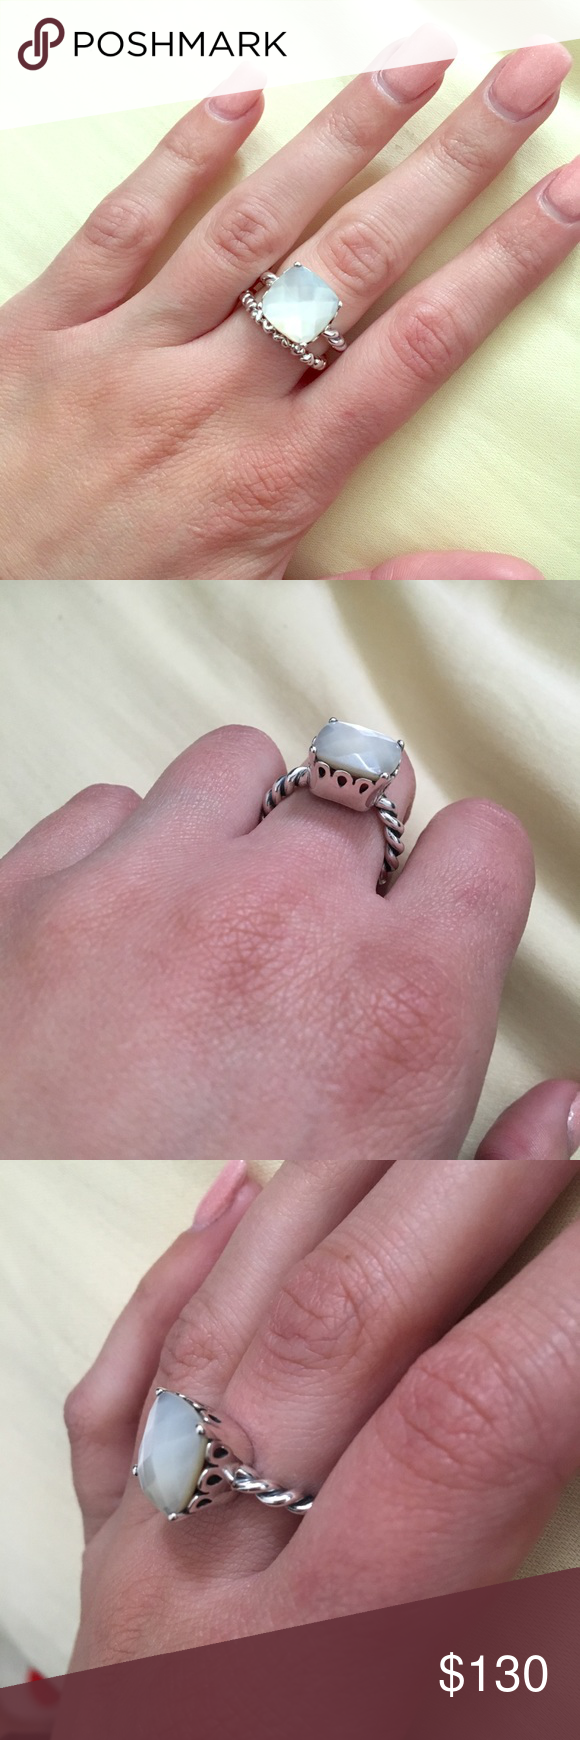 Mother Of Pearl Pandora Ring Selling this beautiful mother of pearl ...